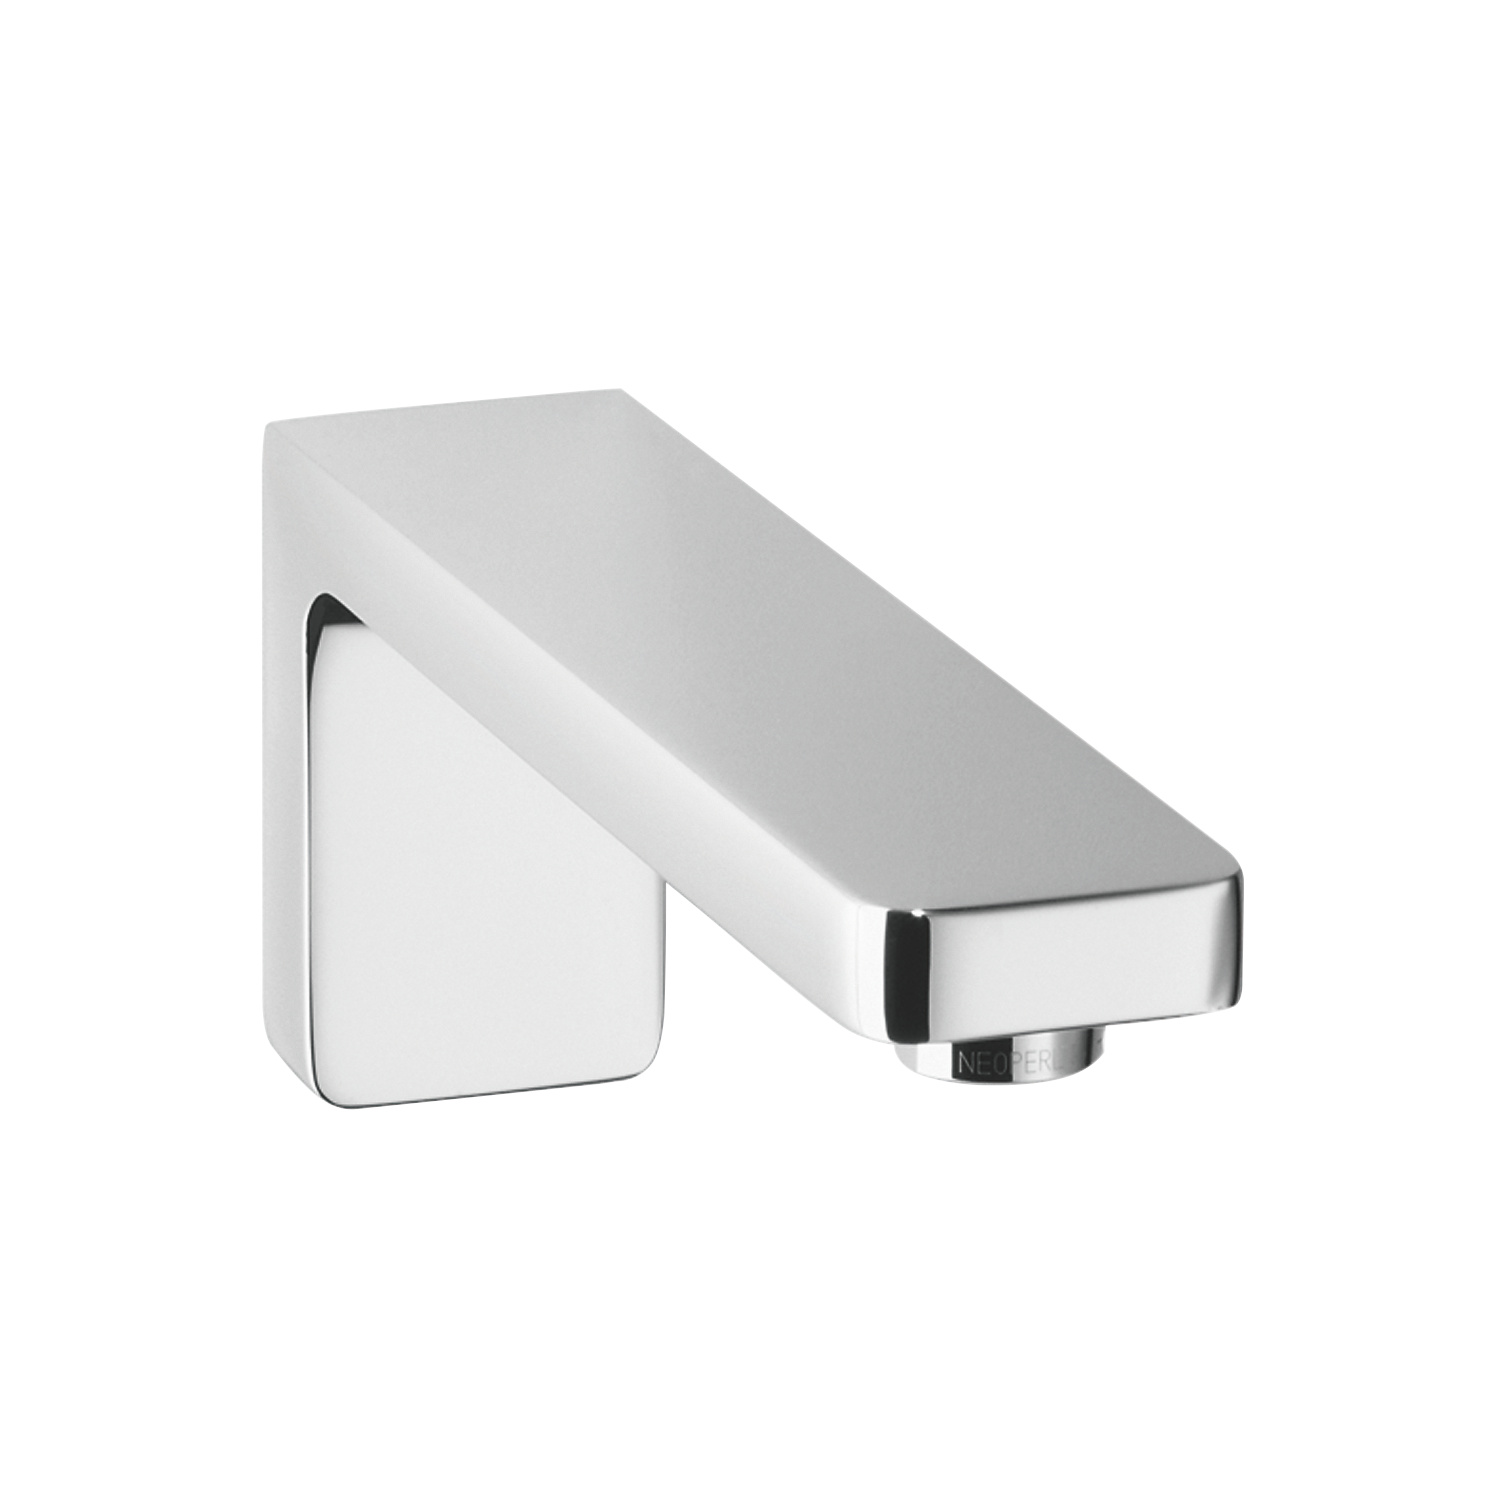 Wall-mounted basin spout without pop-up waste - polished chrome